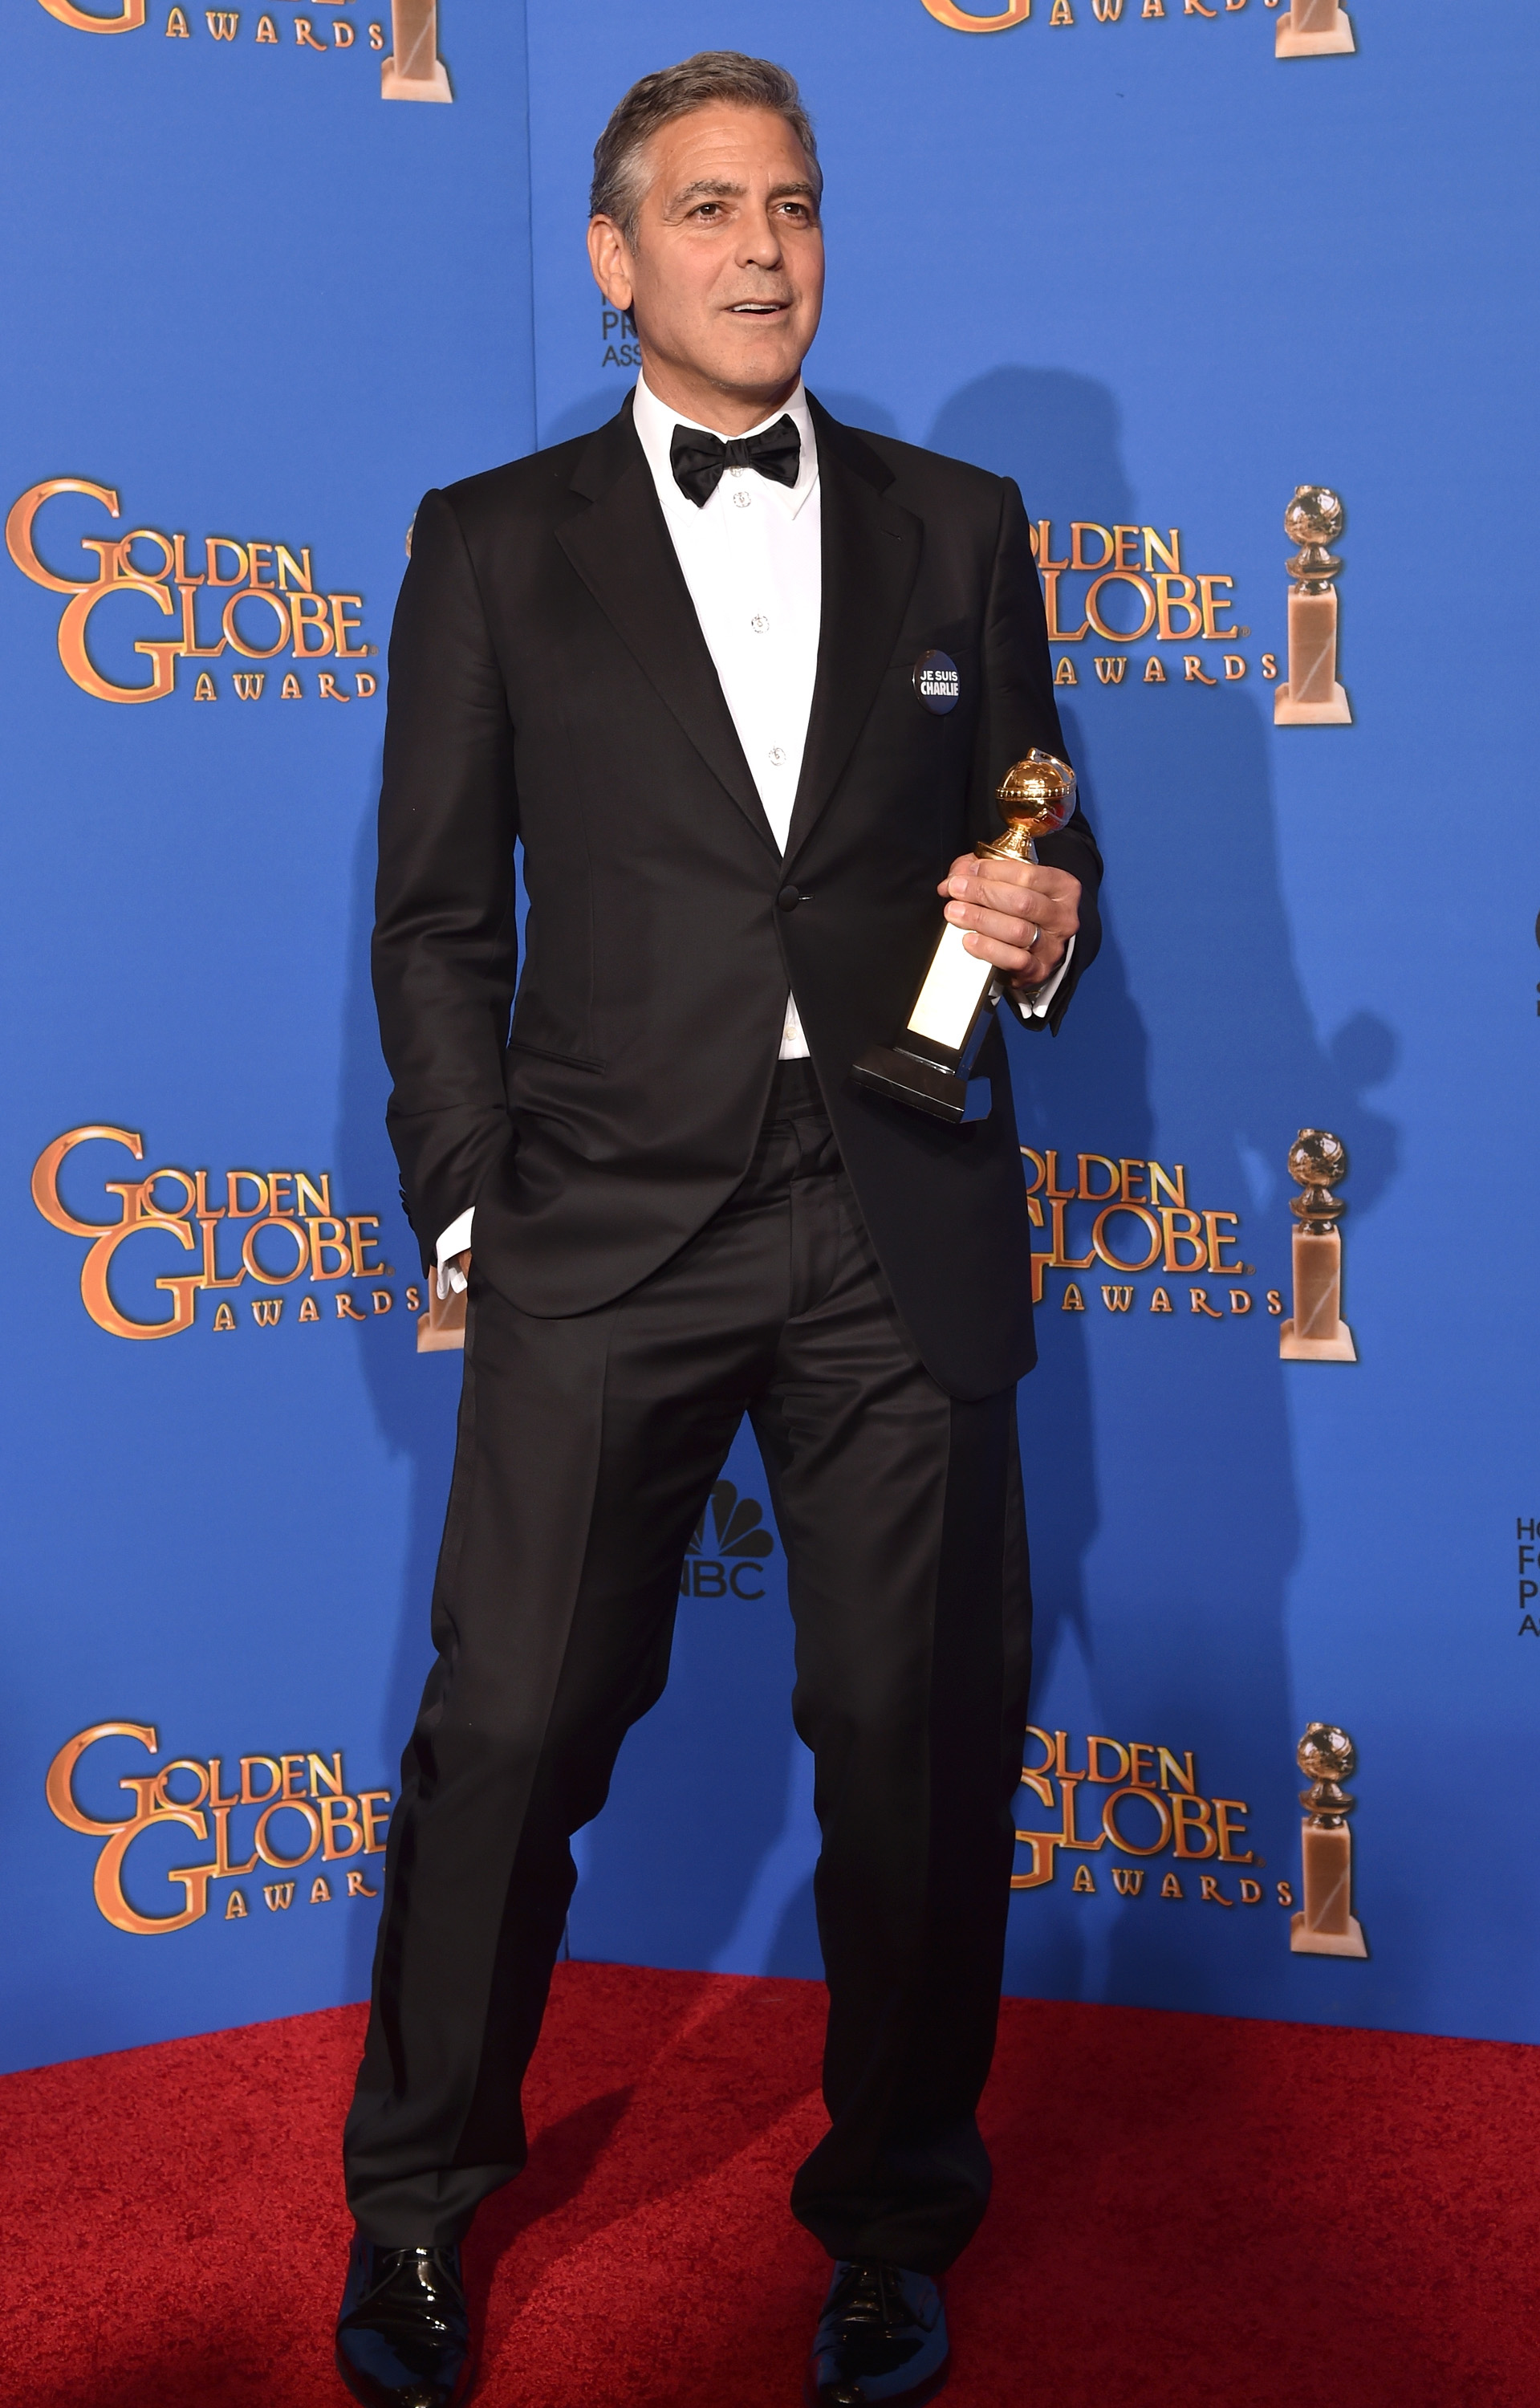 Actor/director George Clooney, recipient of the Cecil B. DeMille Award, poses in the press room